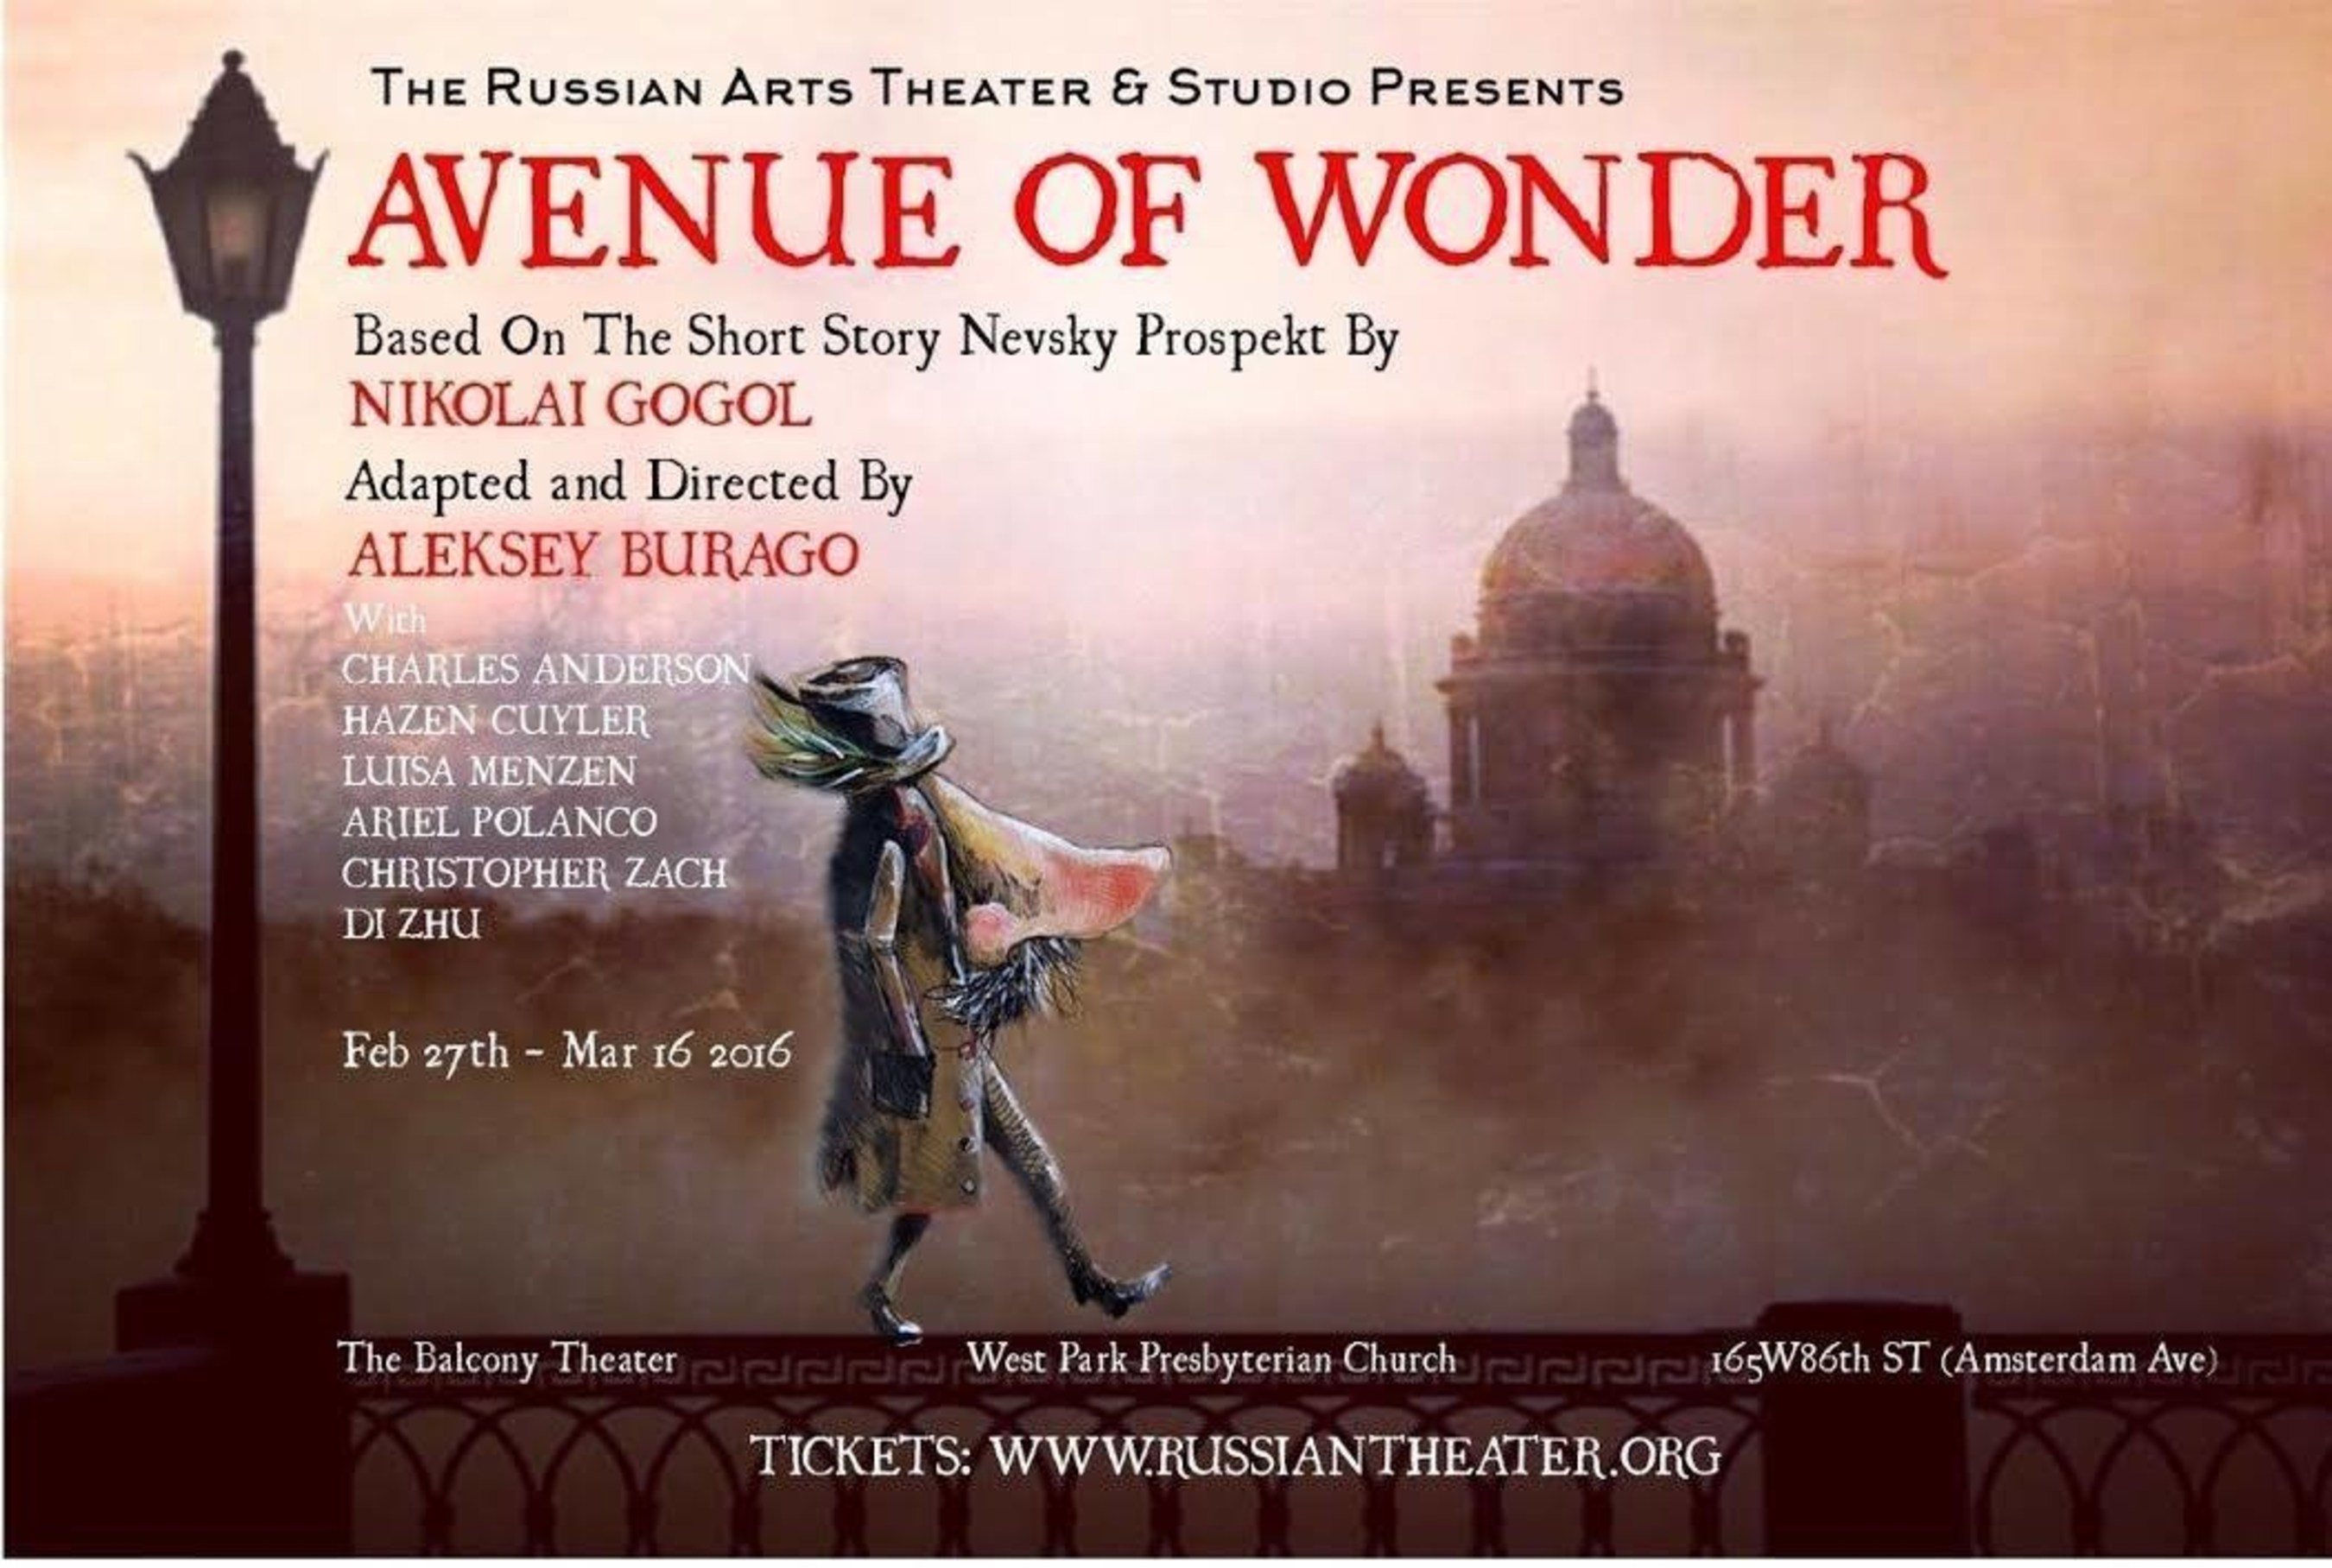 Renowned Russian Director to Stage Avenue of Wonder